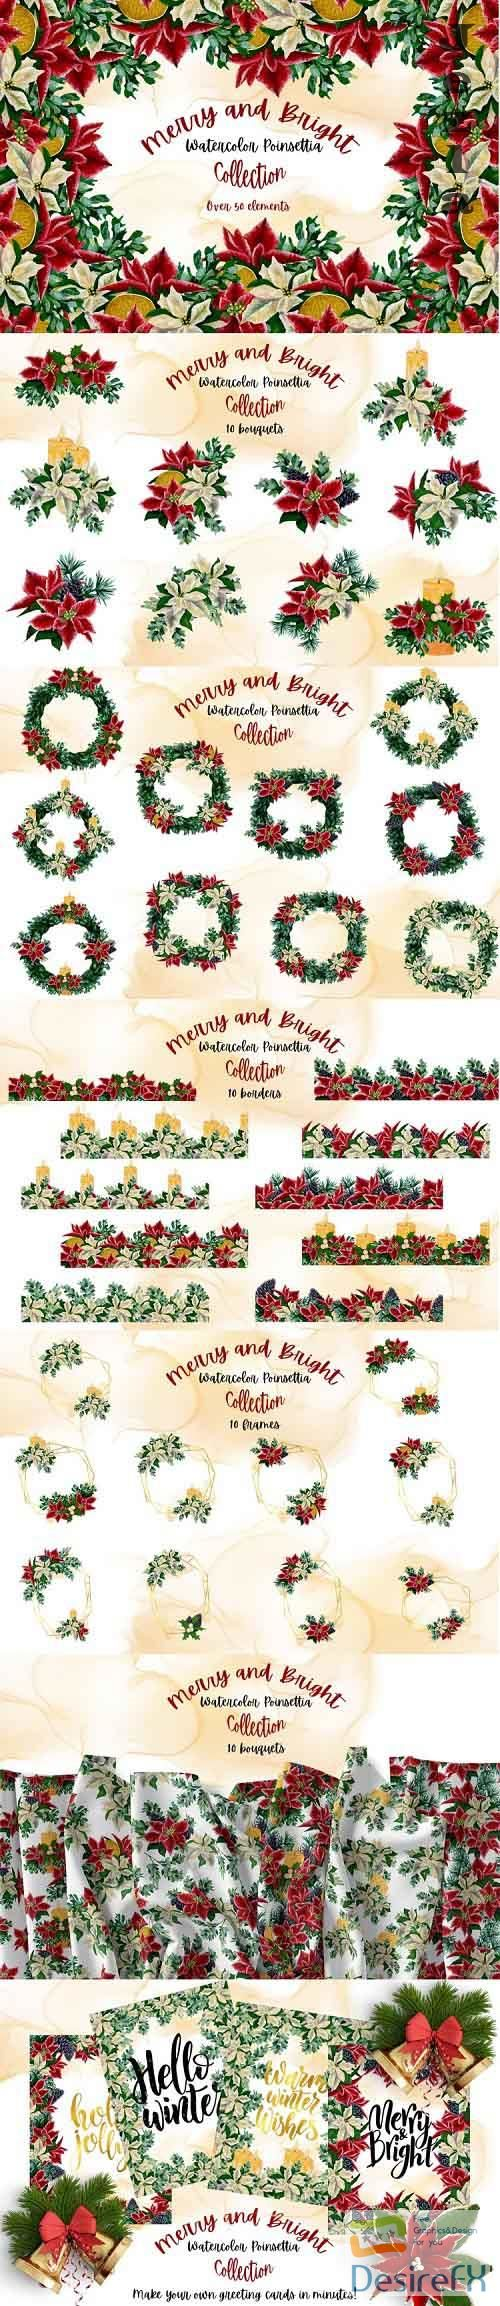 Merry and Bright - Watercolor Poinsettia Collection - 1014543